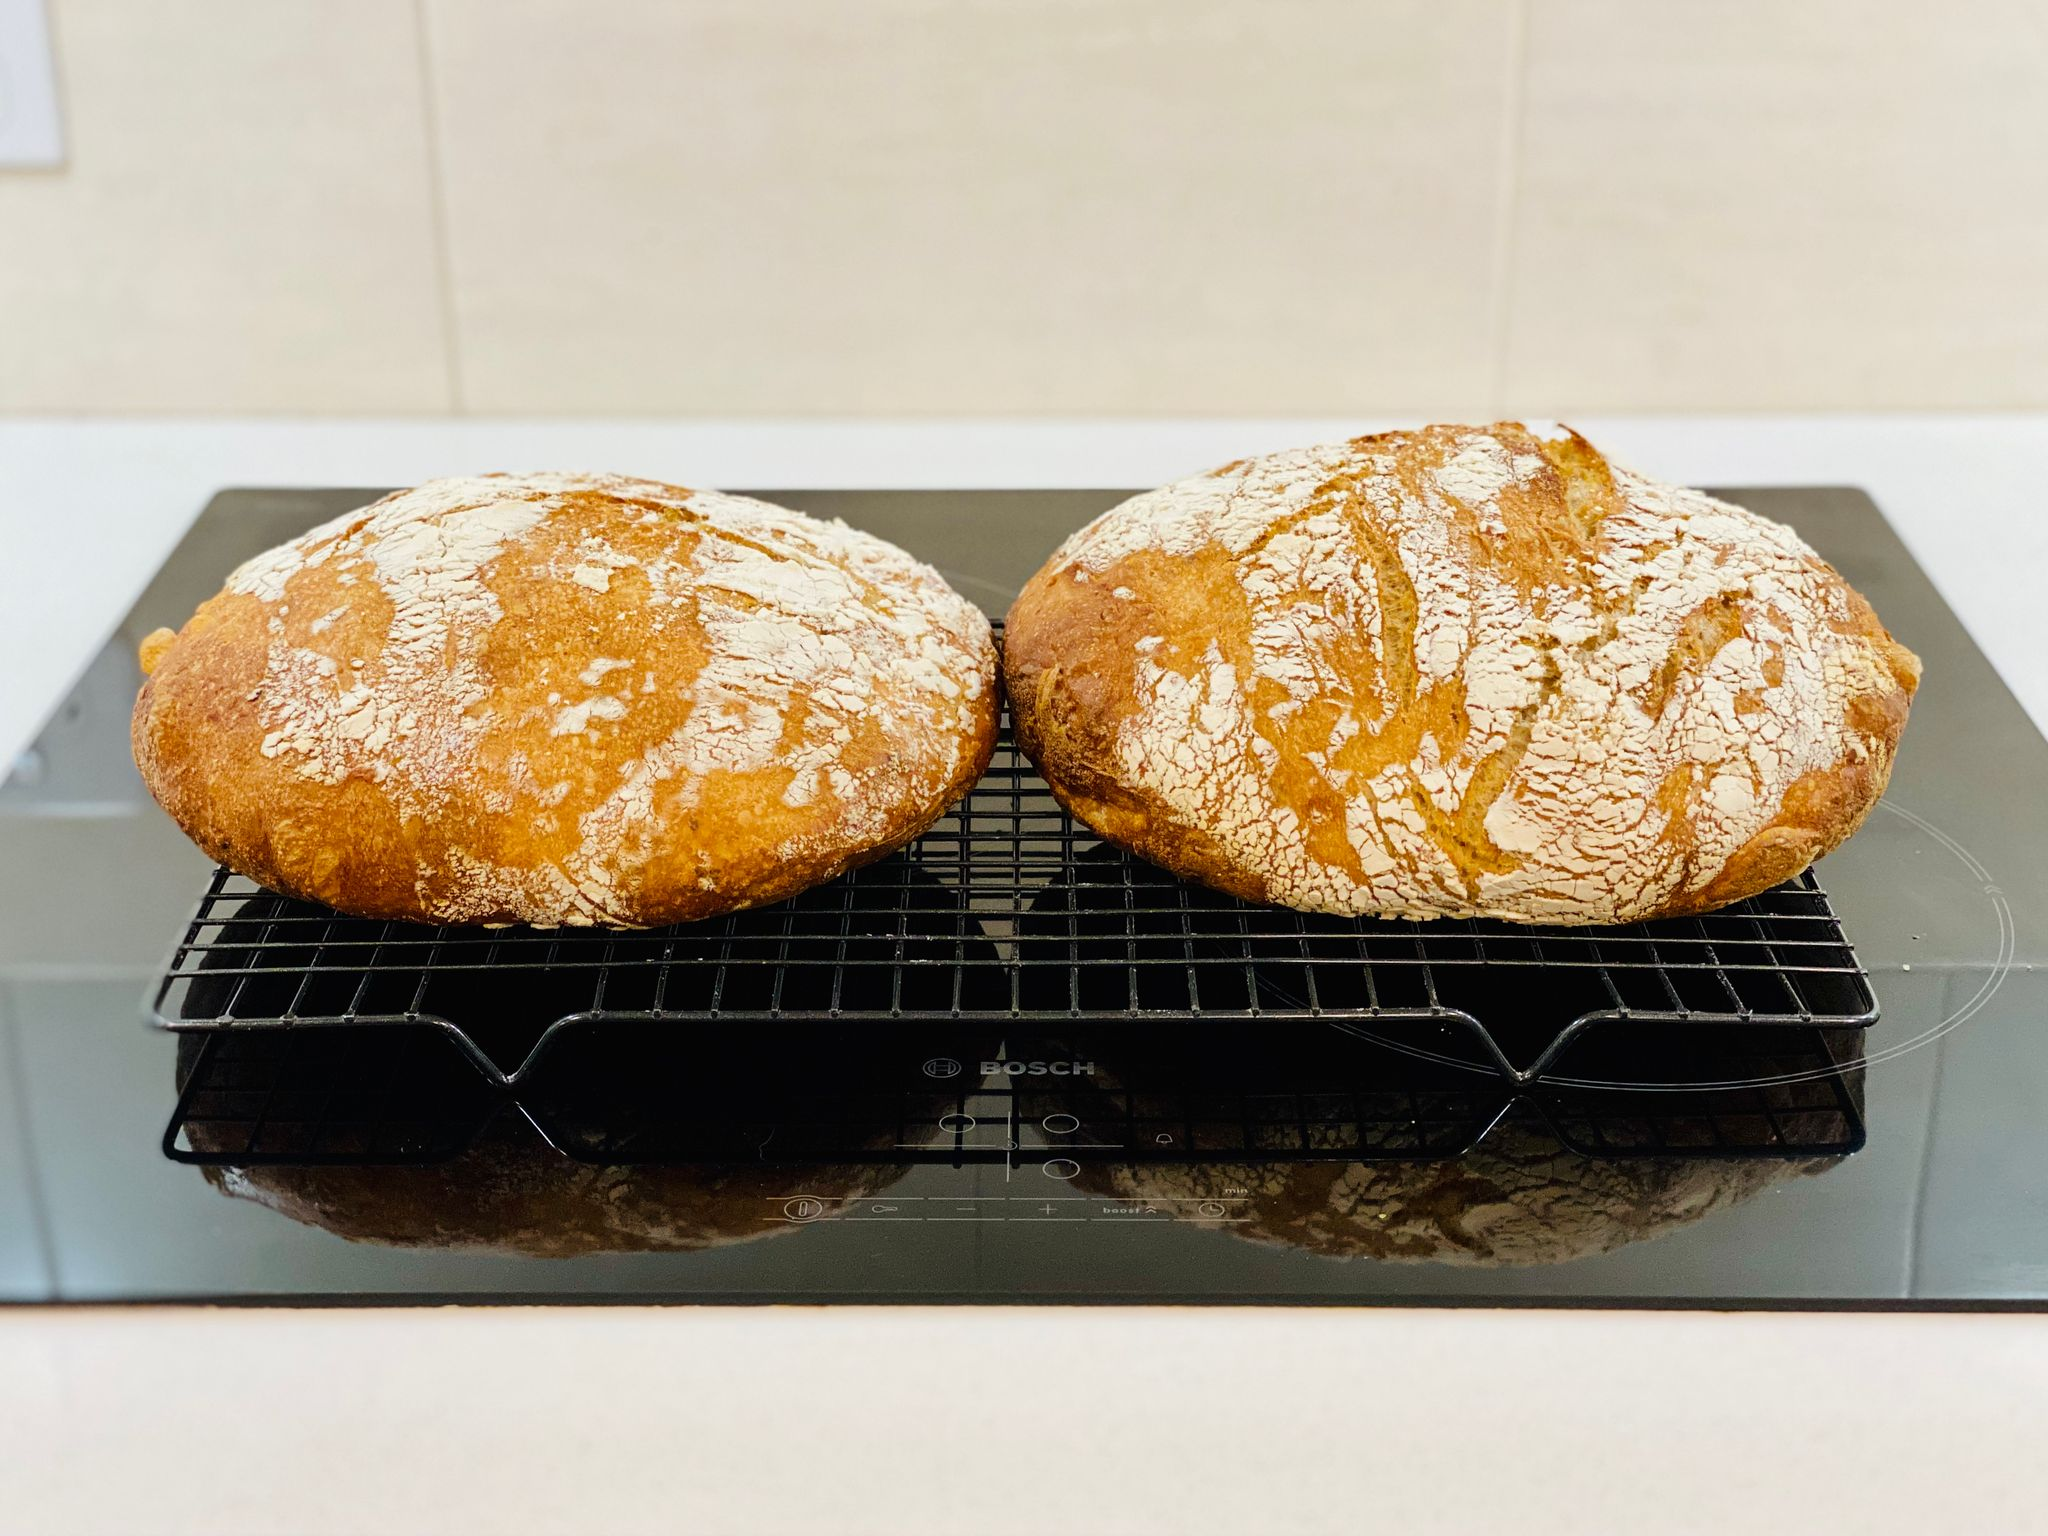 Two round but also flat loaves of bread sitting on a cooling rack.